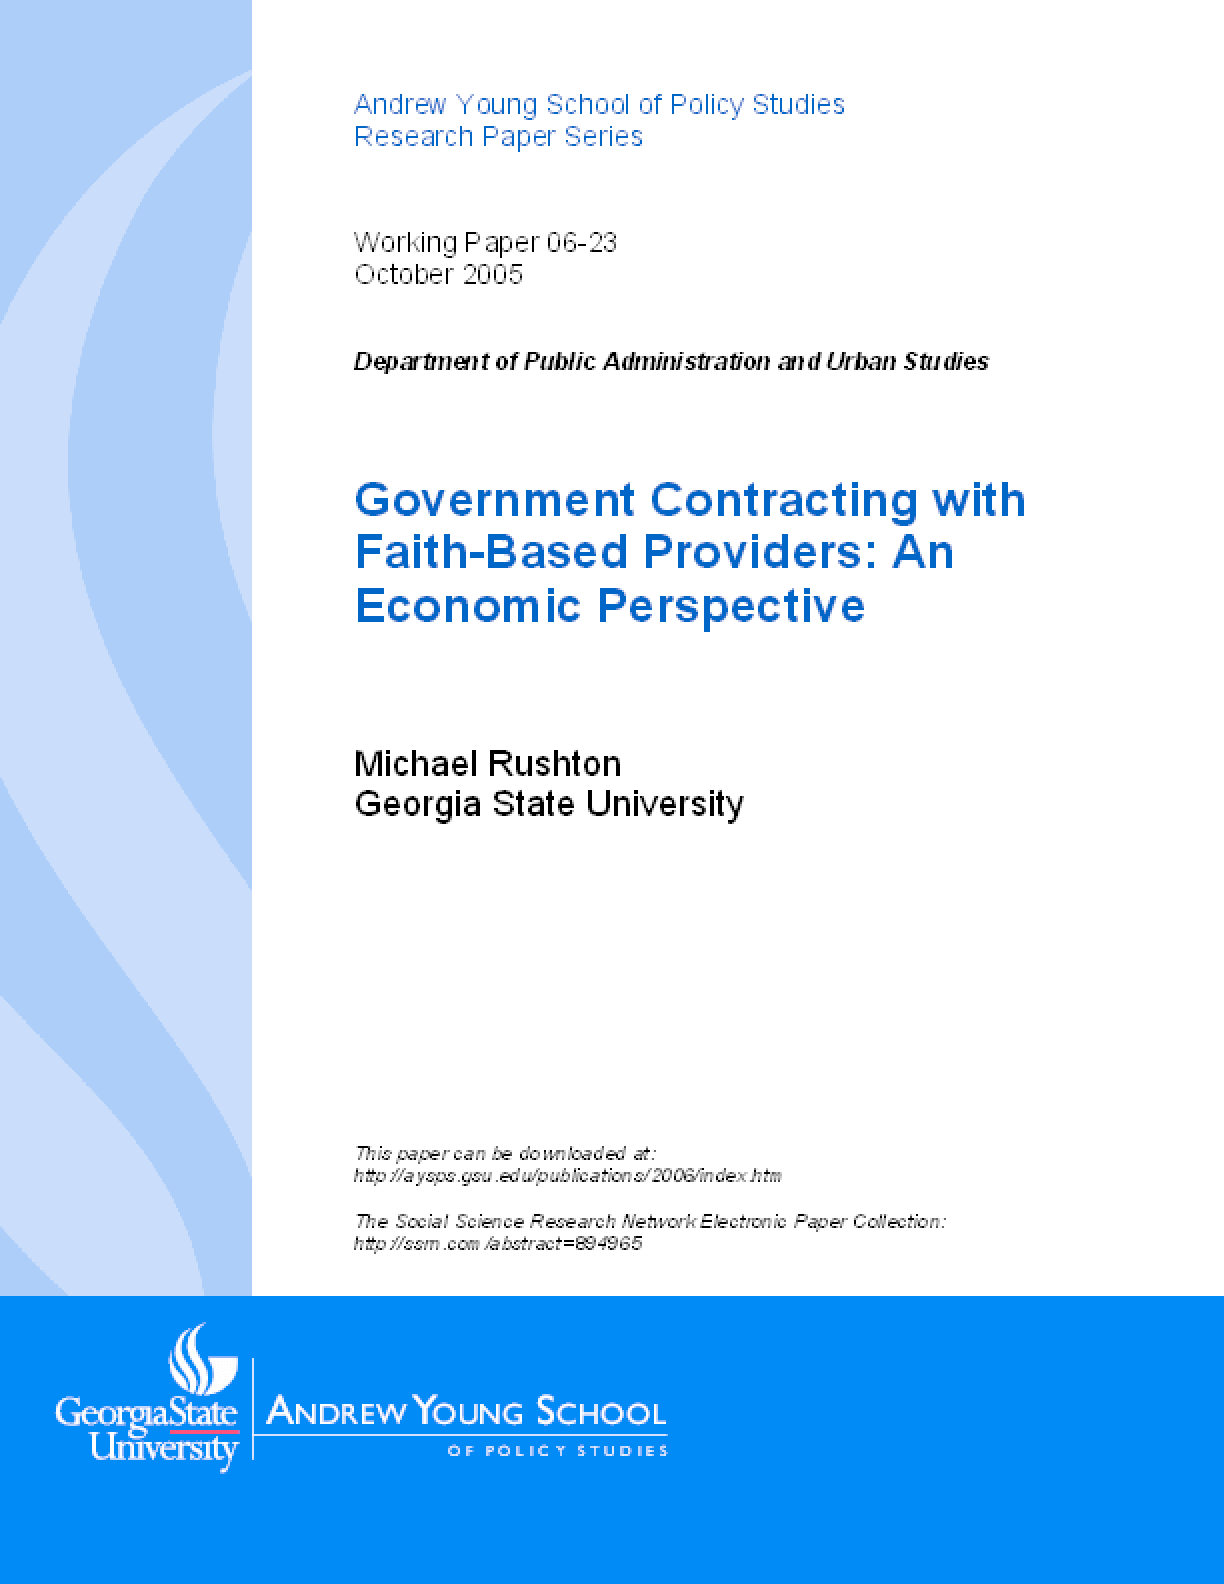 Government Contracting with Faith-Based Providers: An Economic Perspective